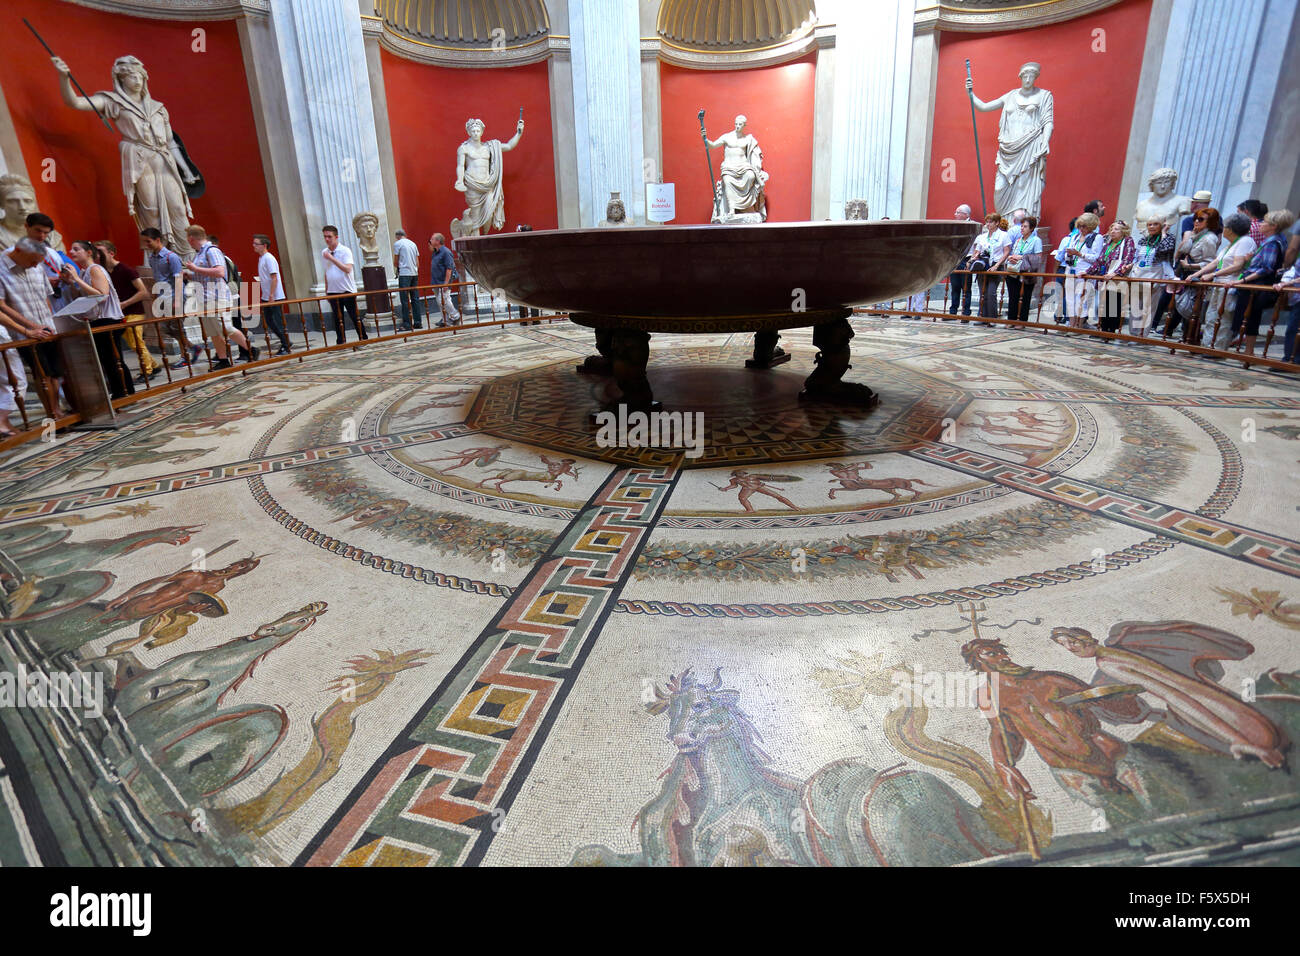 The Sala Rotunda featuring a large red porphyry bath in the Vatican Museum - Stock Image